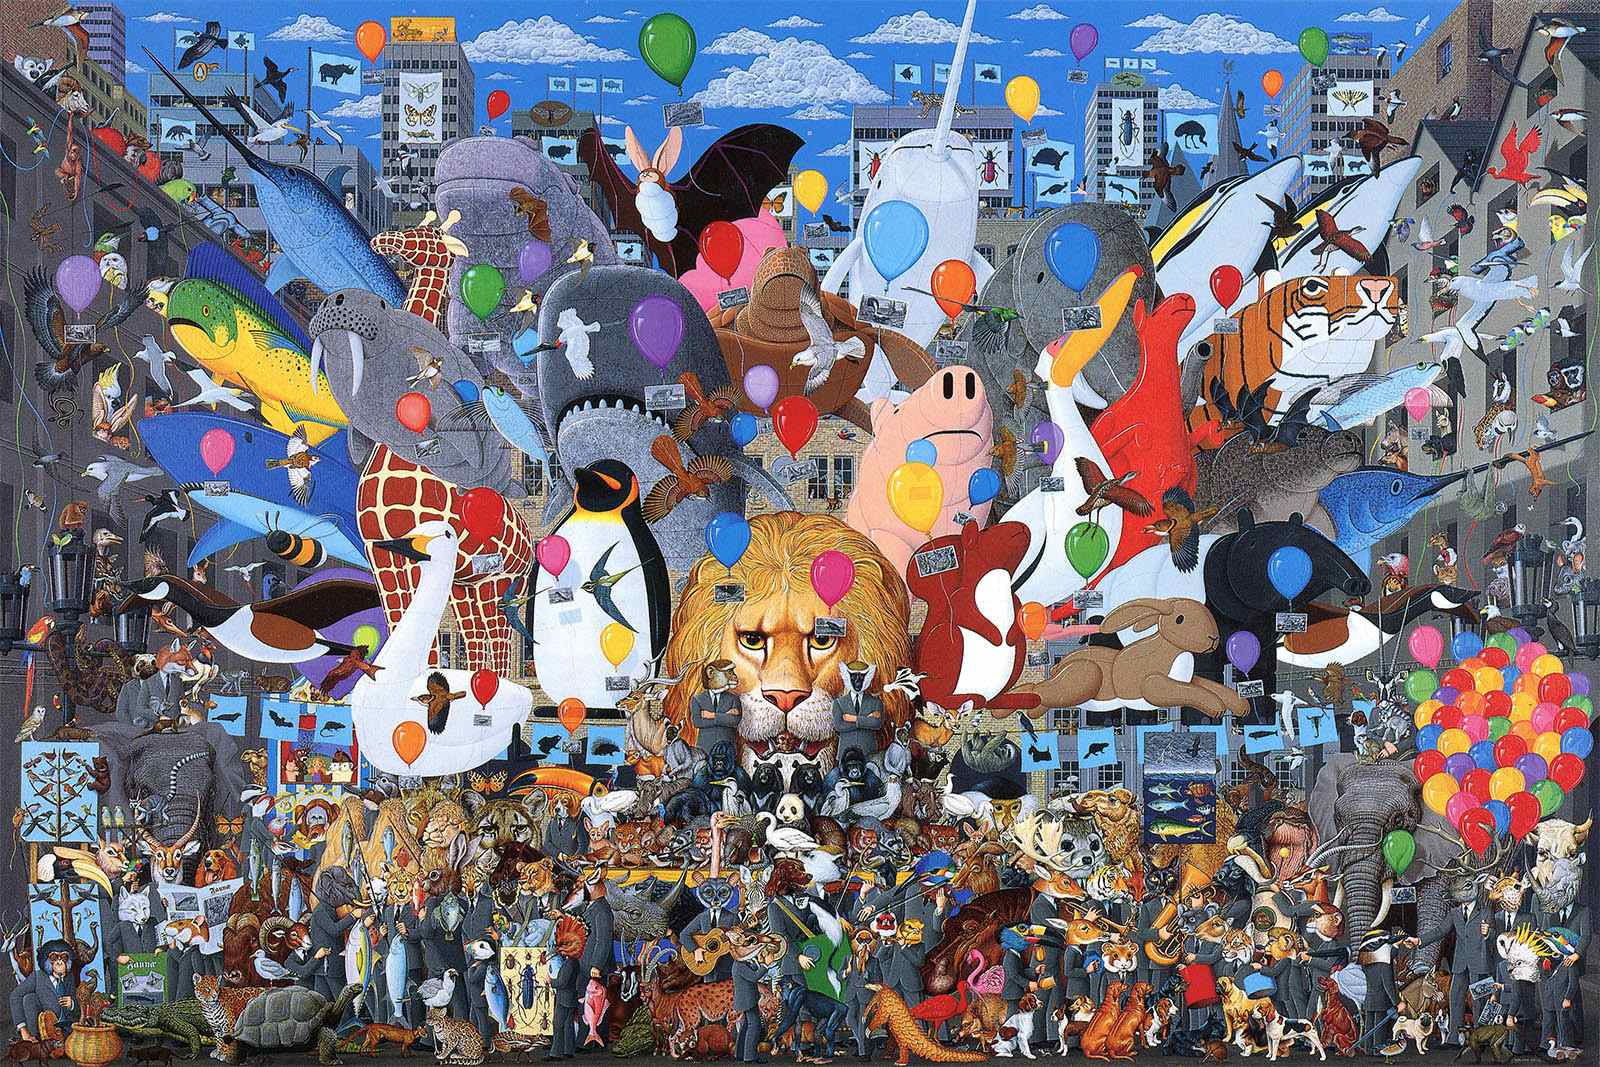 The full picture in The Ultimate Noah's Ark. Picture by codex99.com